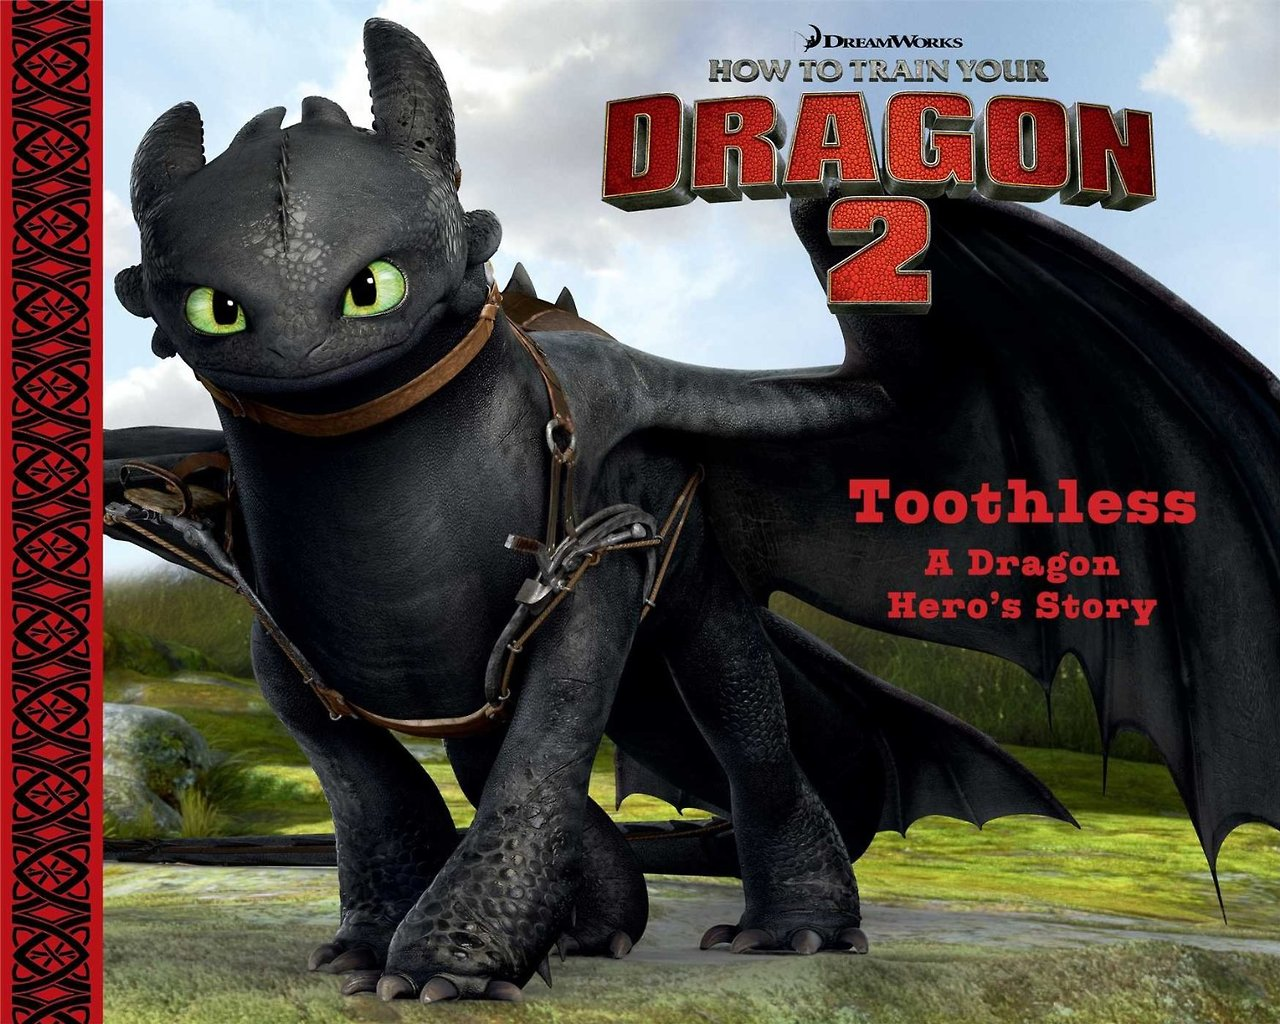 How To Train Your Dragon 2 Images Books HD Wallpaper And Background Photos